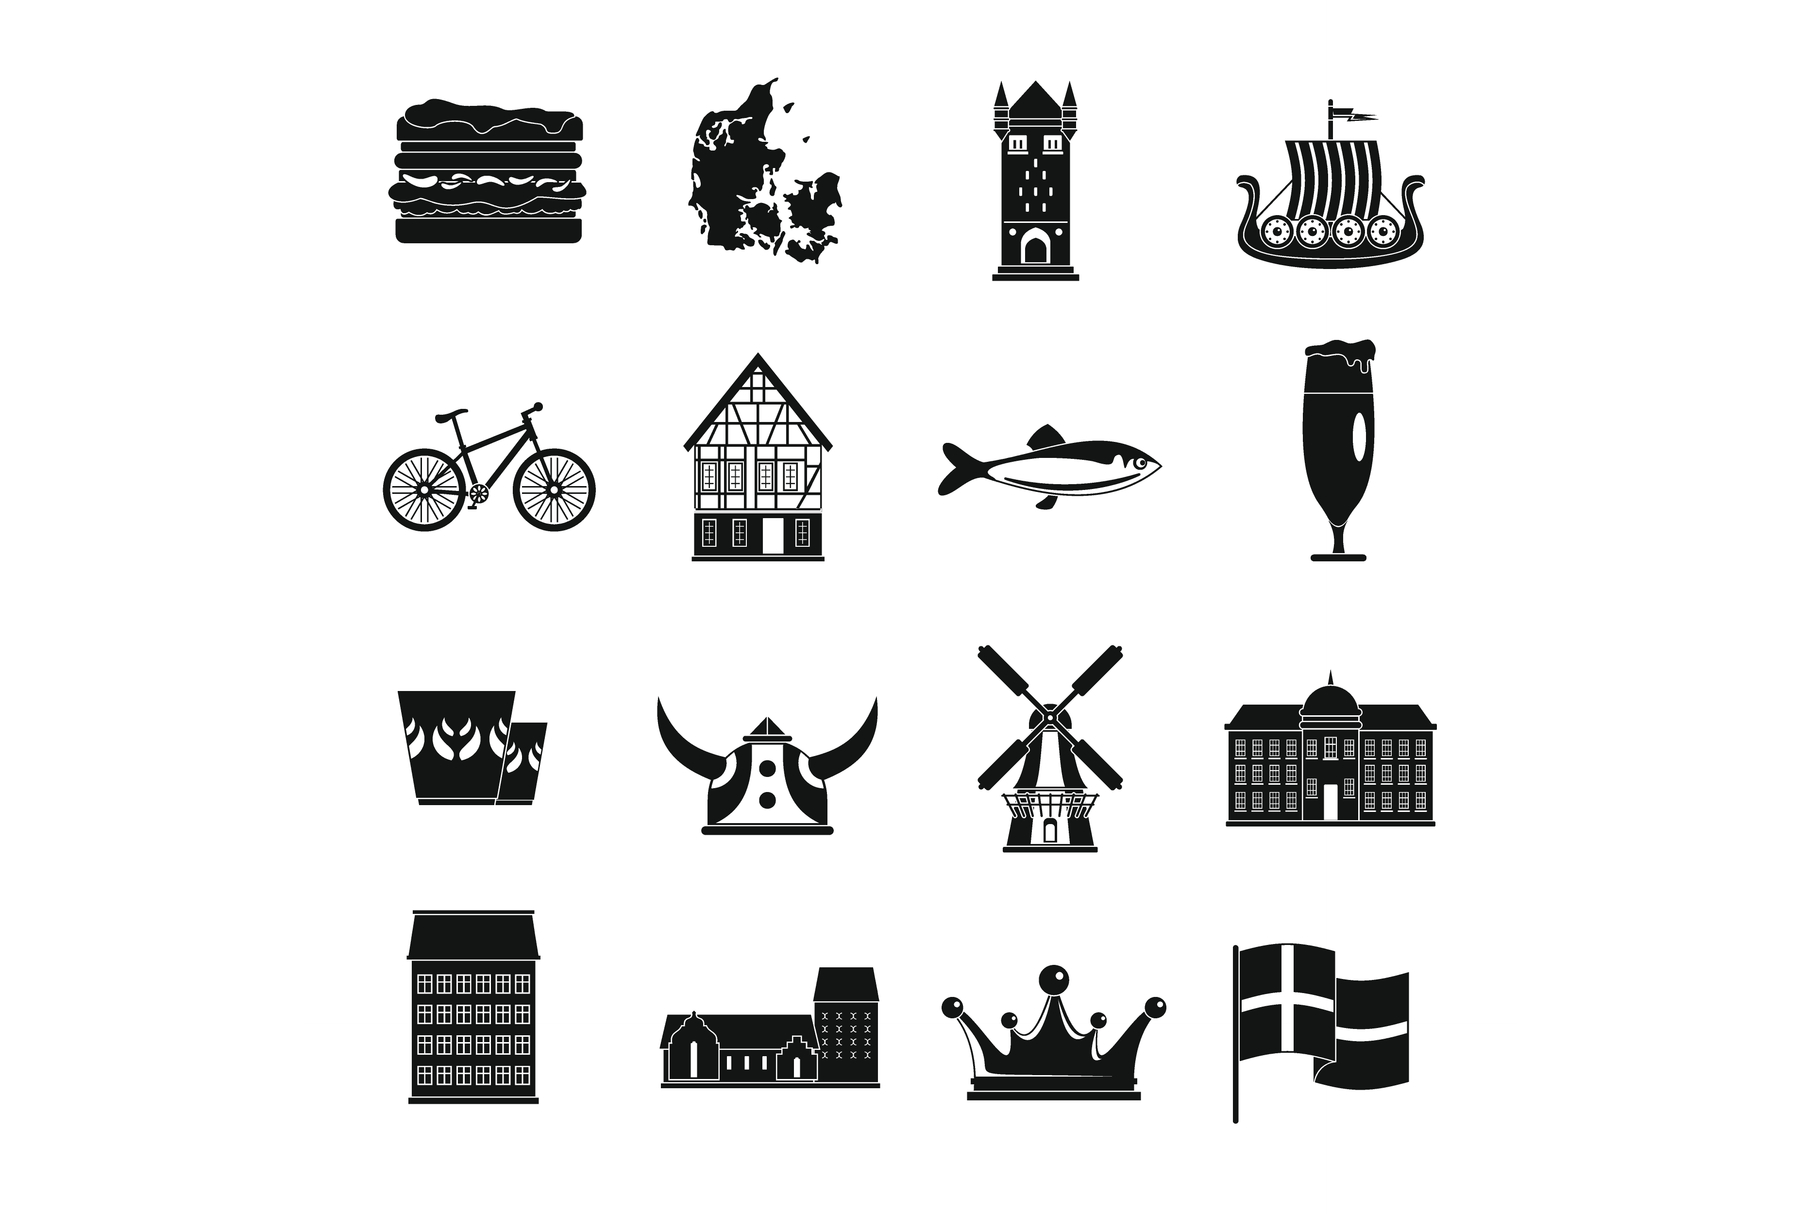 Denmark travel icons set, simple style example image 1